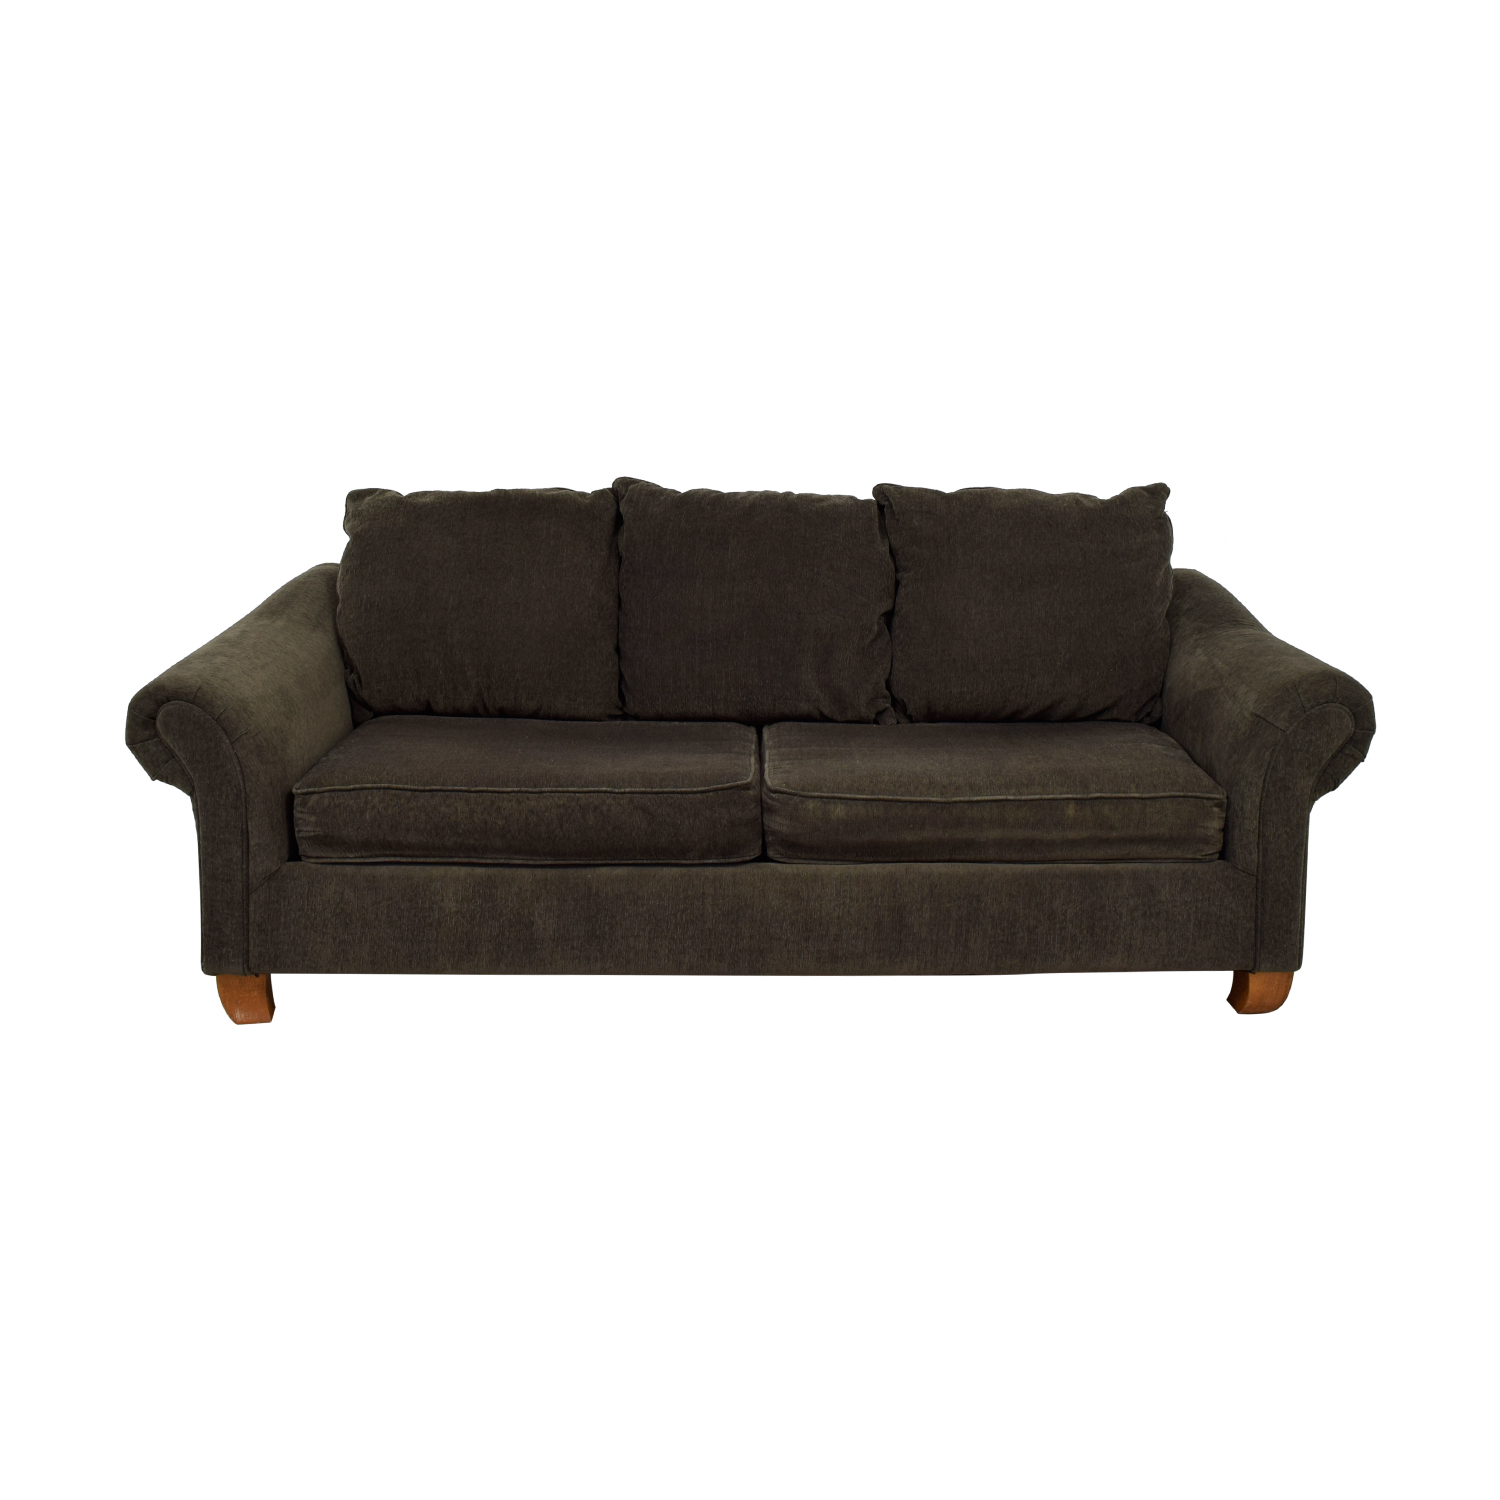 Hughes Furniture Hughes Furniture Brown Two-Cushion Curved Arm Sofa nyc